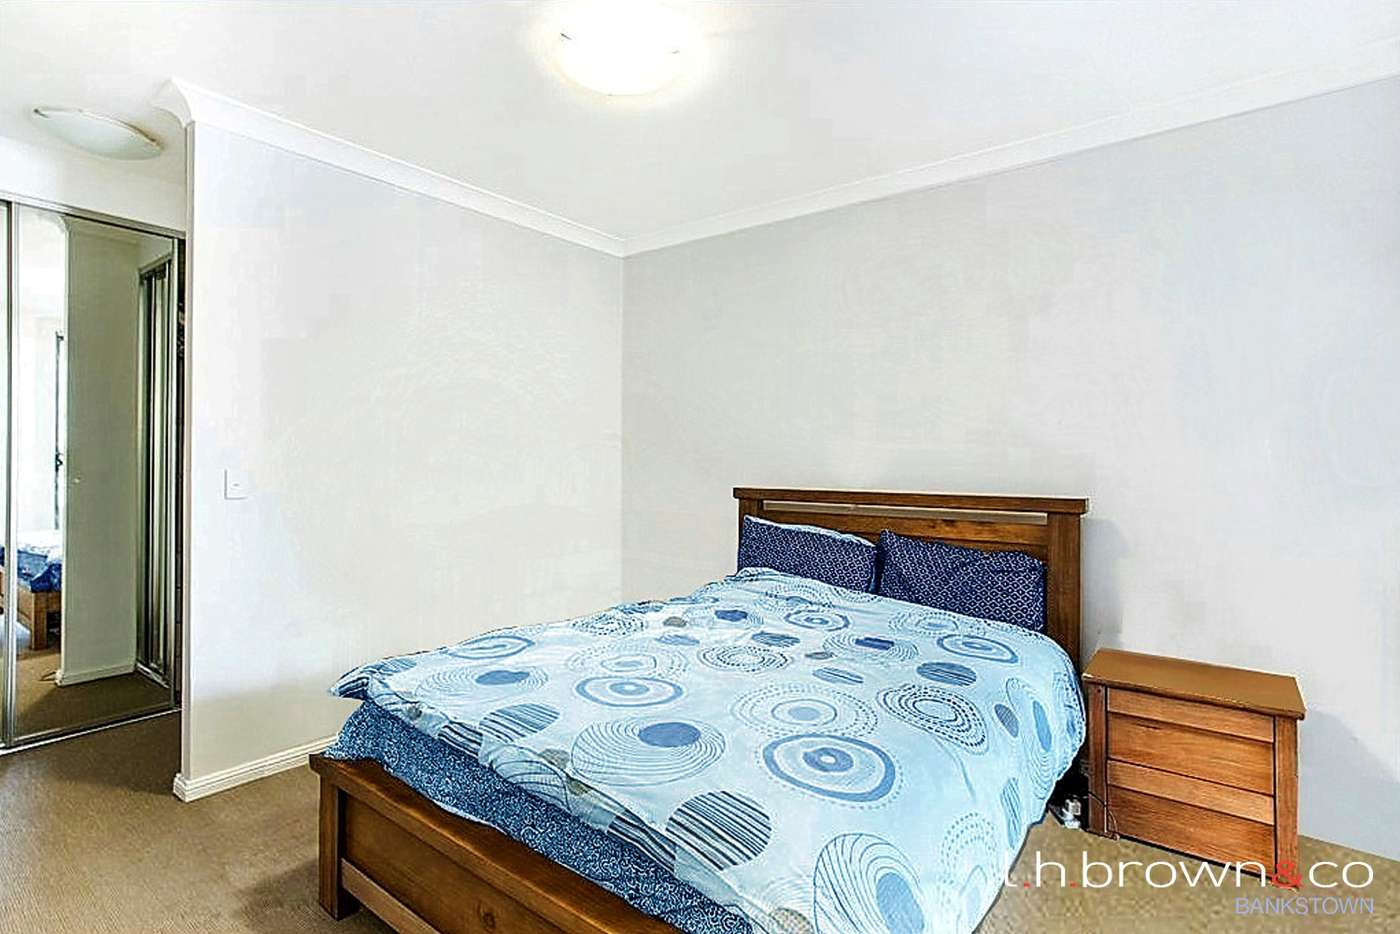 Fifth view of Homely apartment listing, Unit 505/16-20 Meredith St, Bankstown NSW 2200